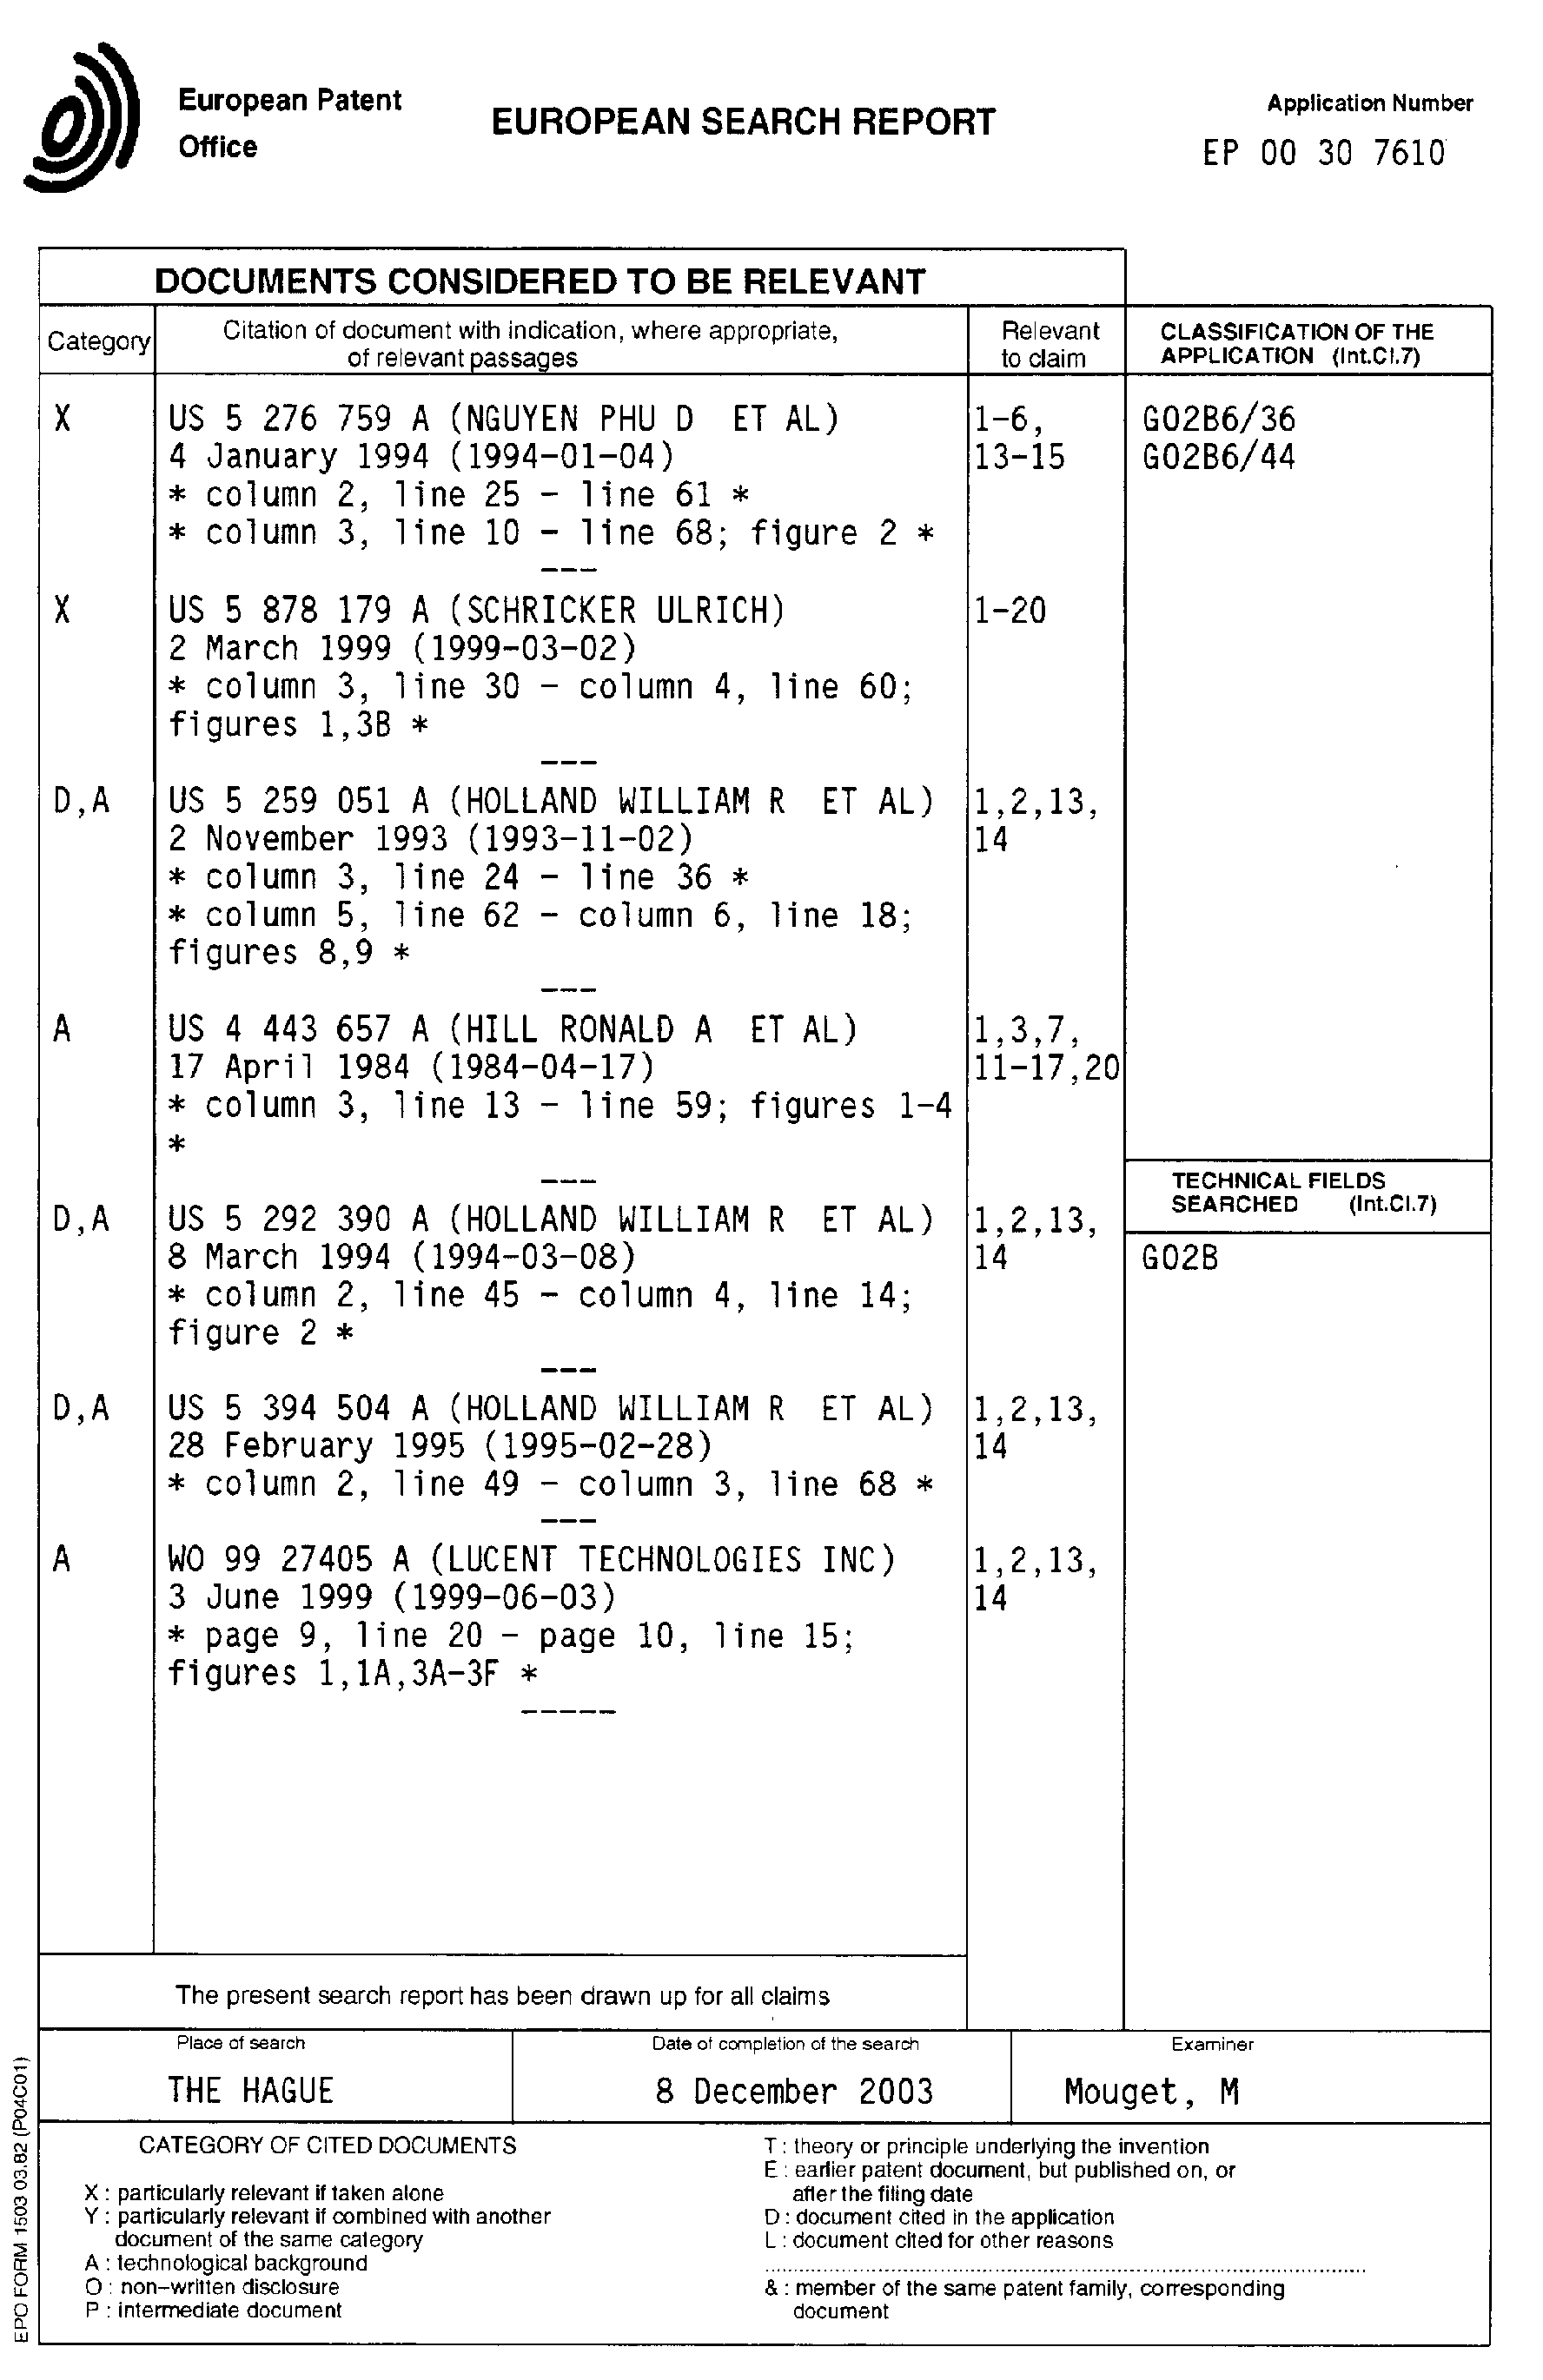 raychem corporation interconnection Specification forms a part of master specification c-6100 for the raychem integrated interconnection system(12s) 12 description the raychem mtc connectors covered by this specification are high  27 raychem corporation c-6100 system overview and general requirements for integrated interconnection system(12s)components.